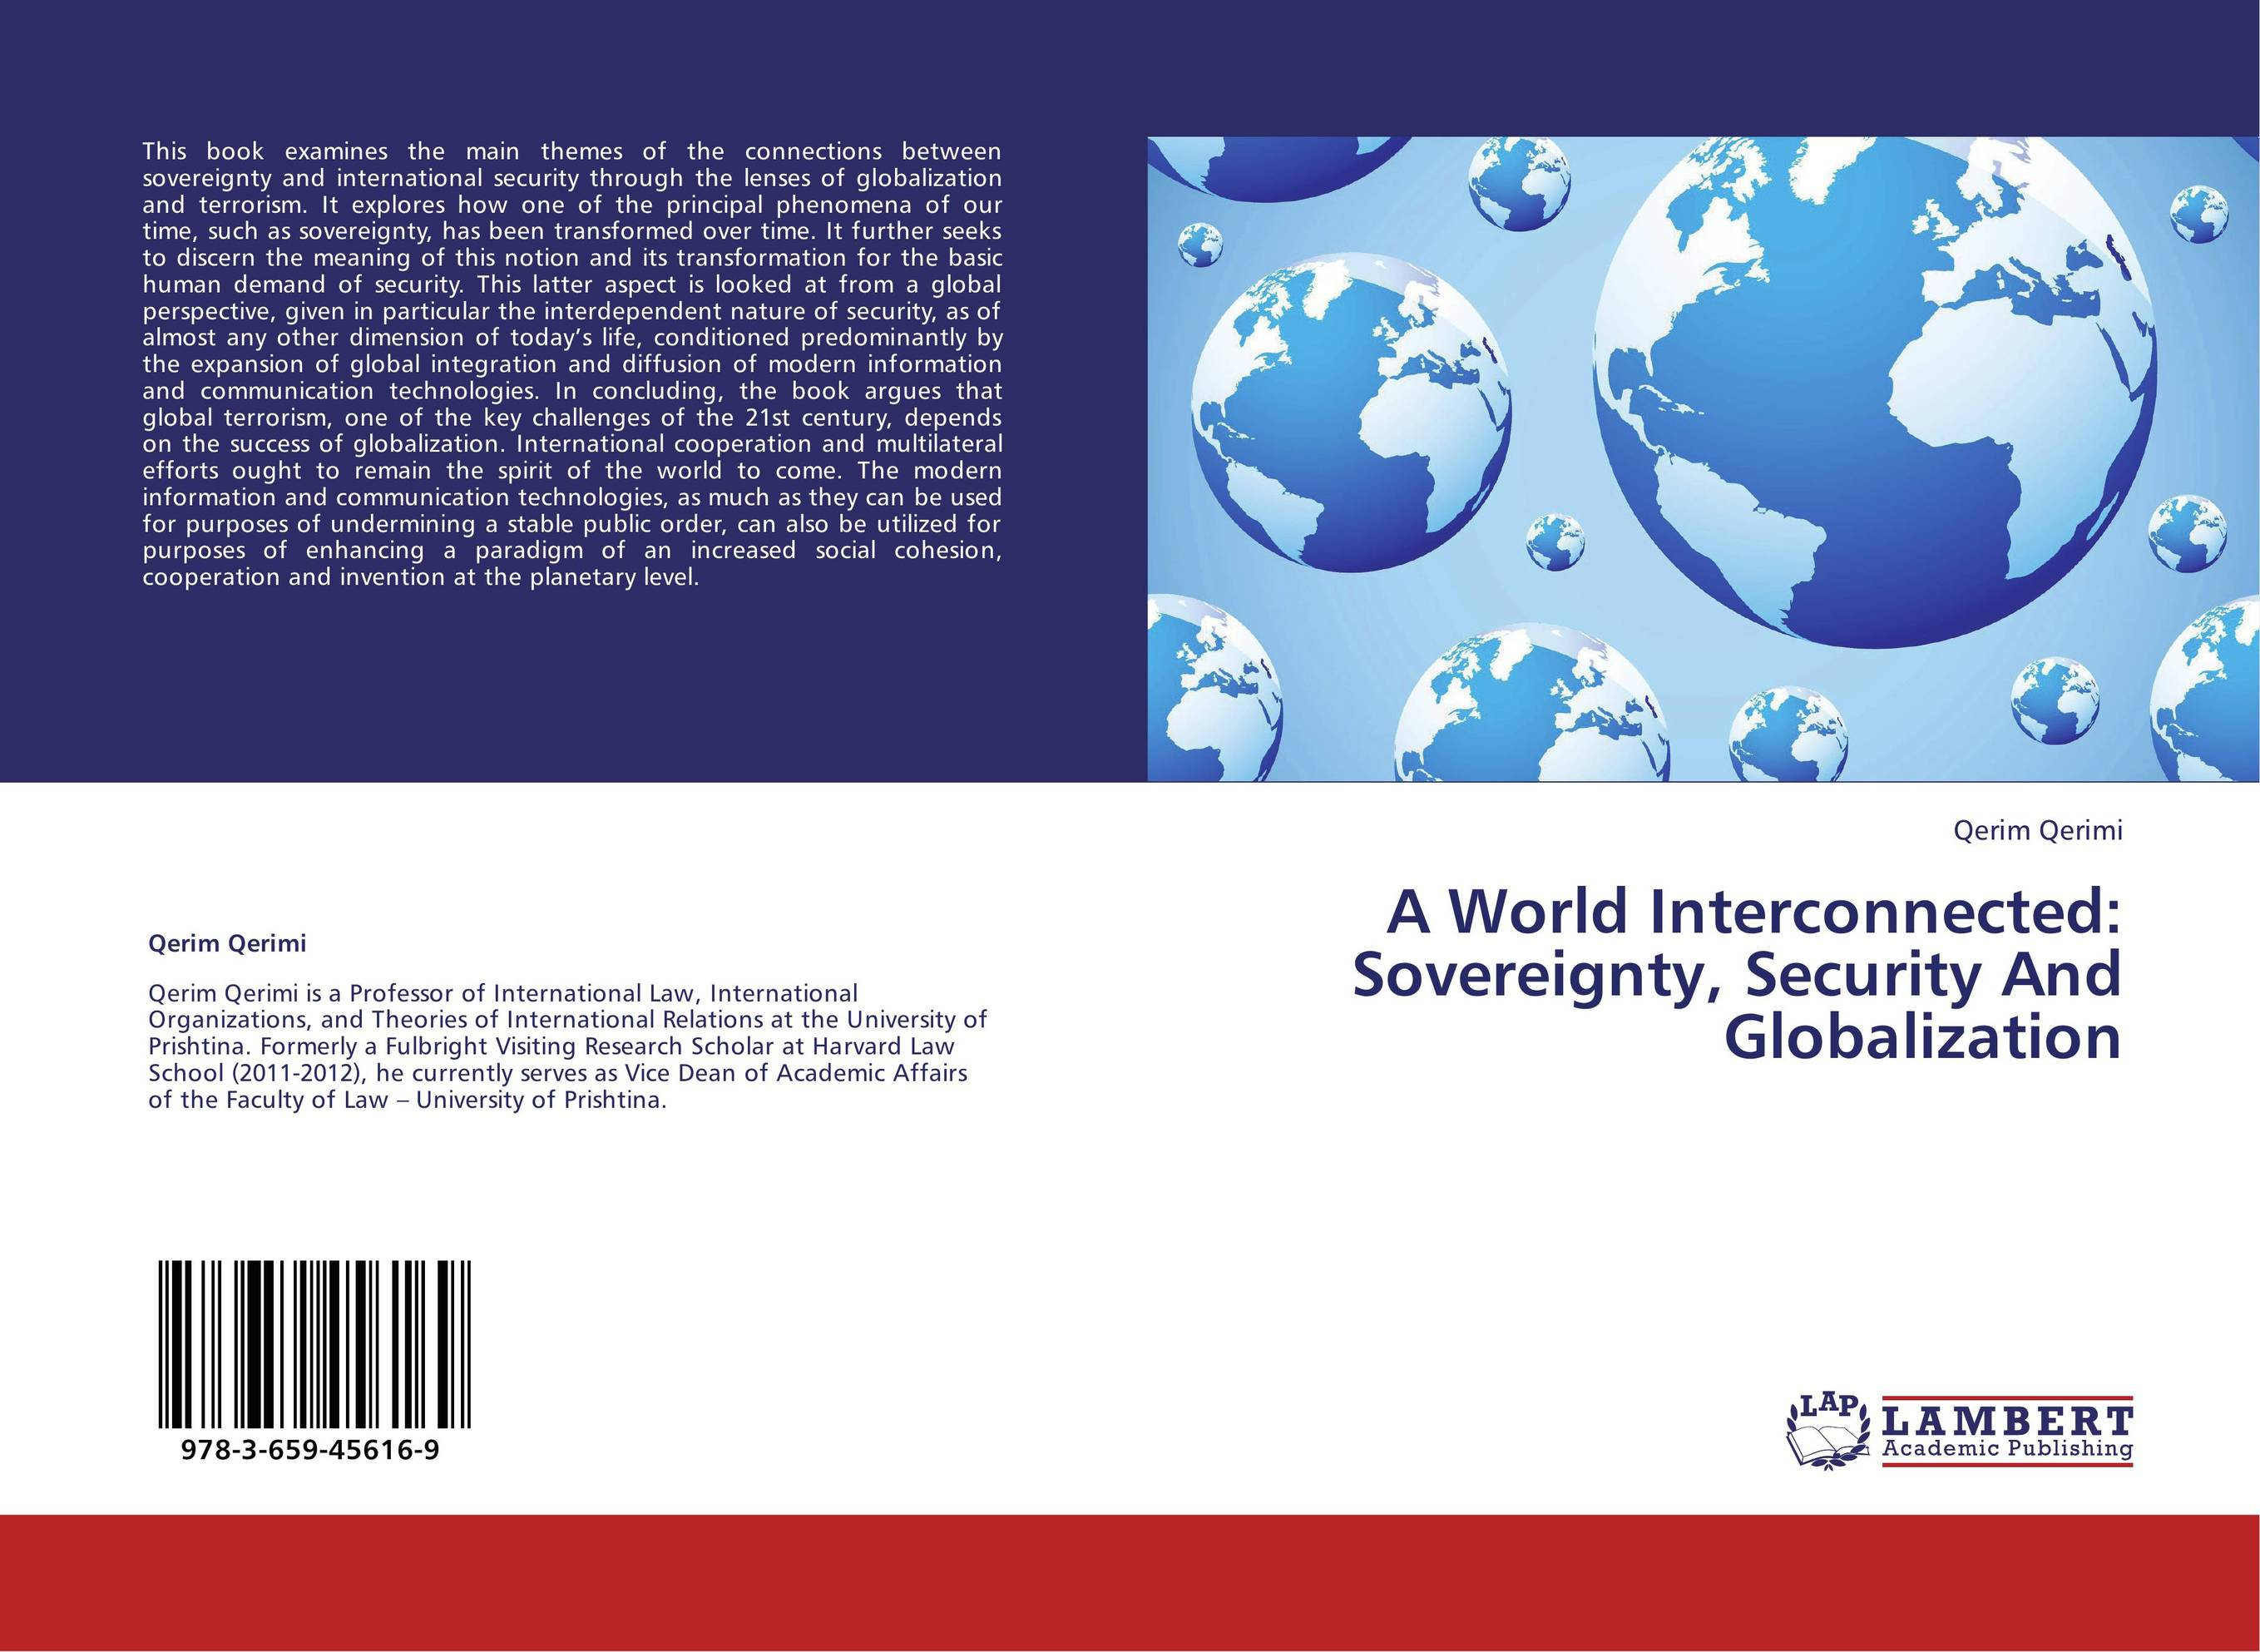 globalisation and its effect on sovereignty Sovereignty, though its meanings have empty of meaning and effect for all united nations and the more robust development of global institutions.